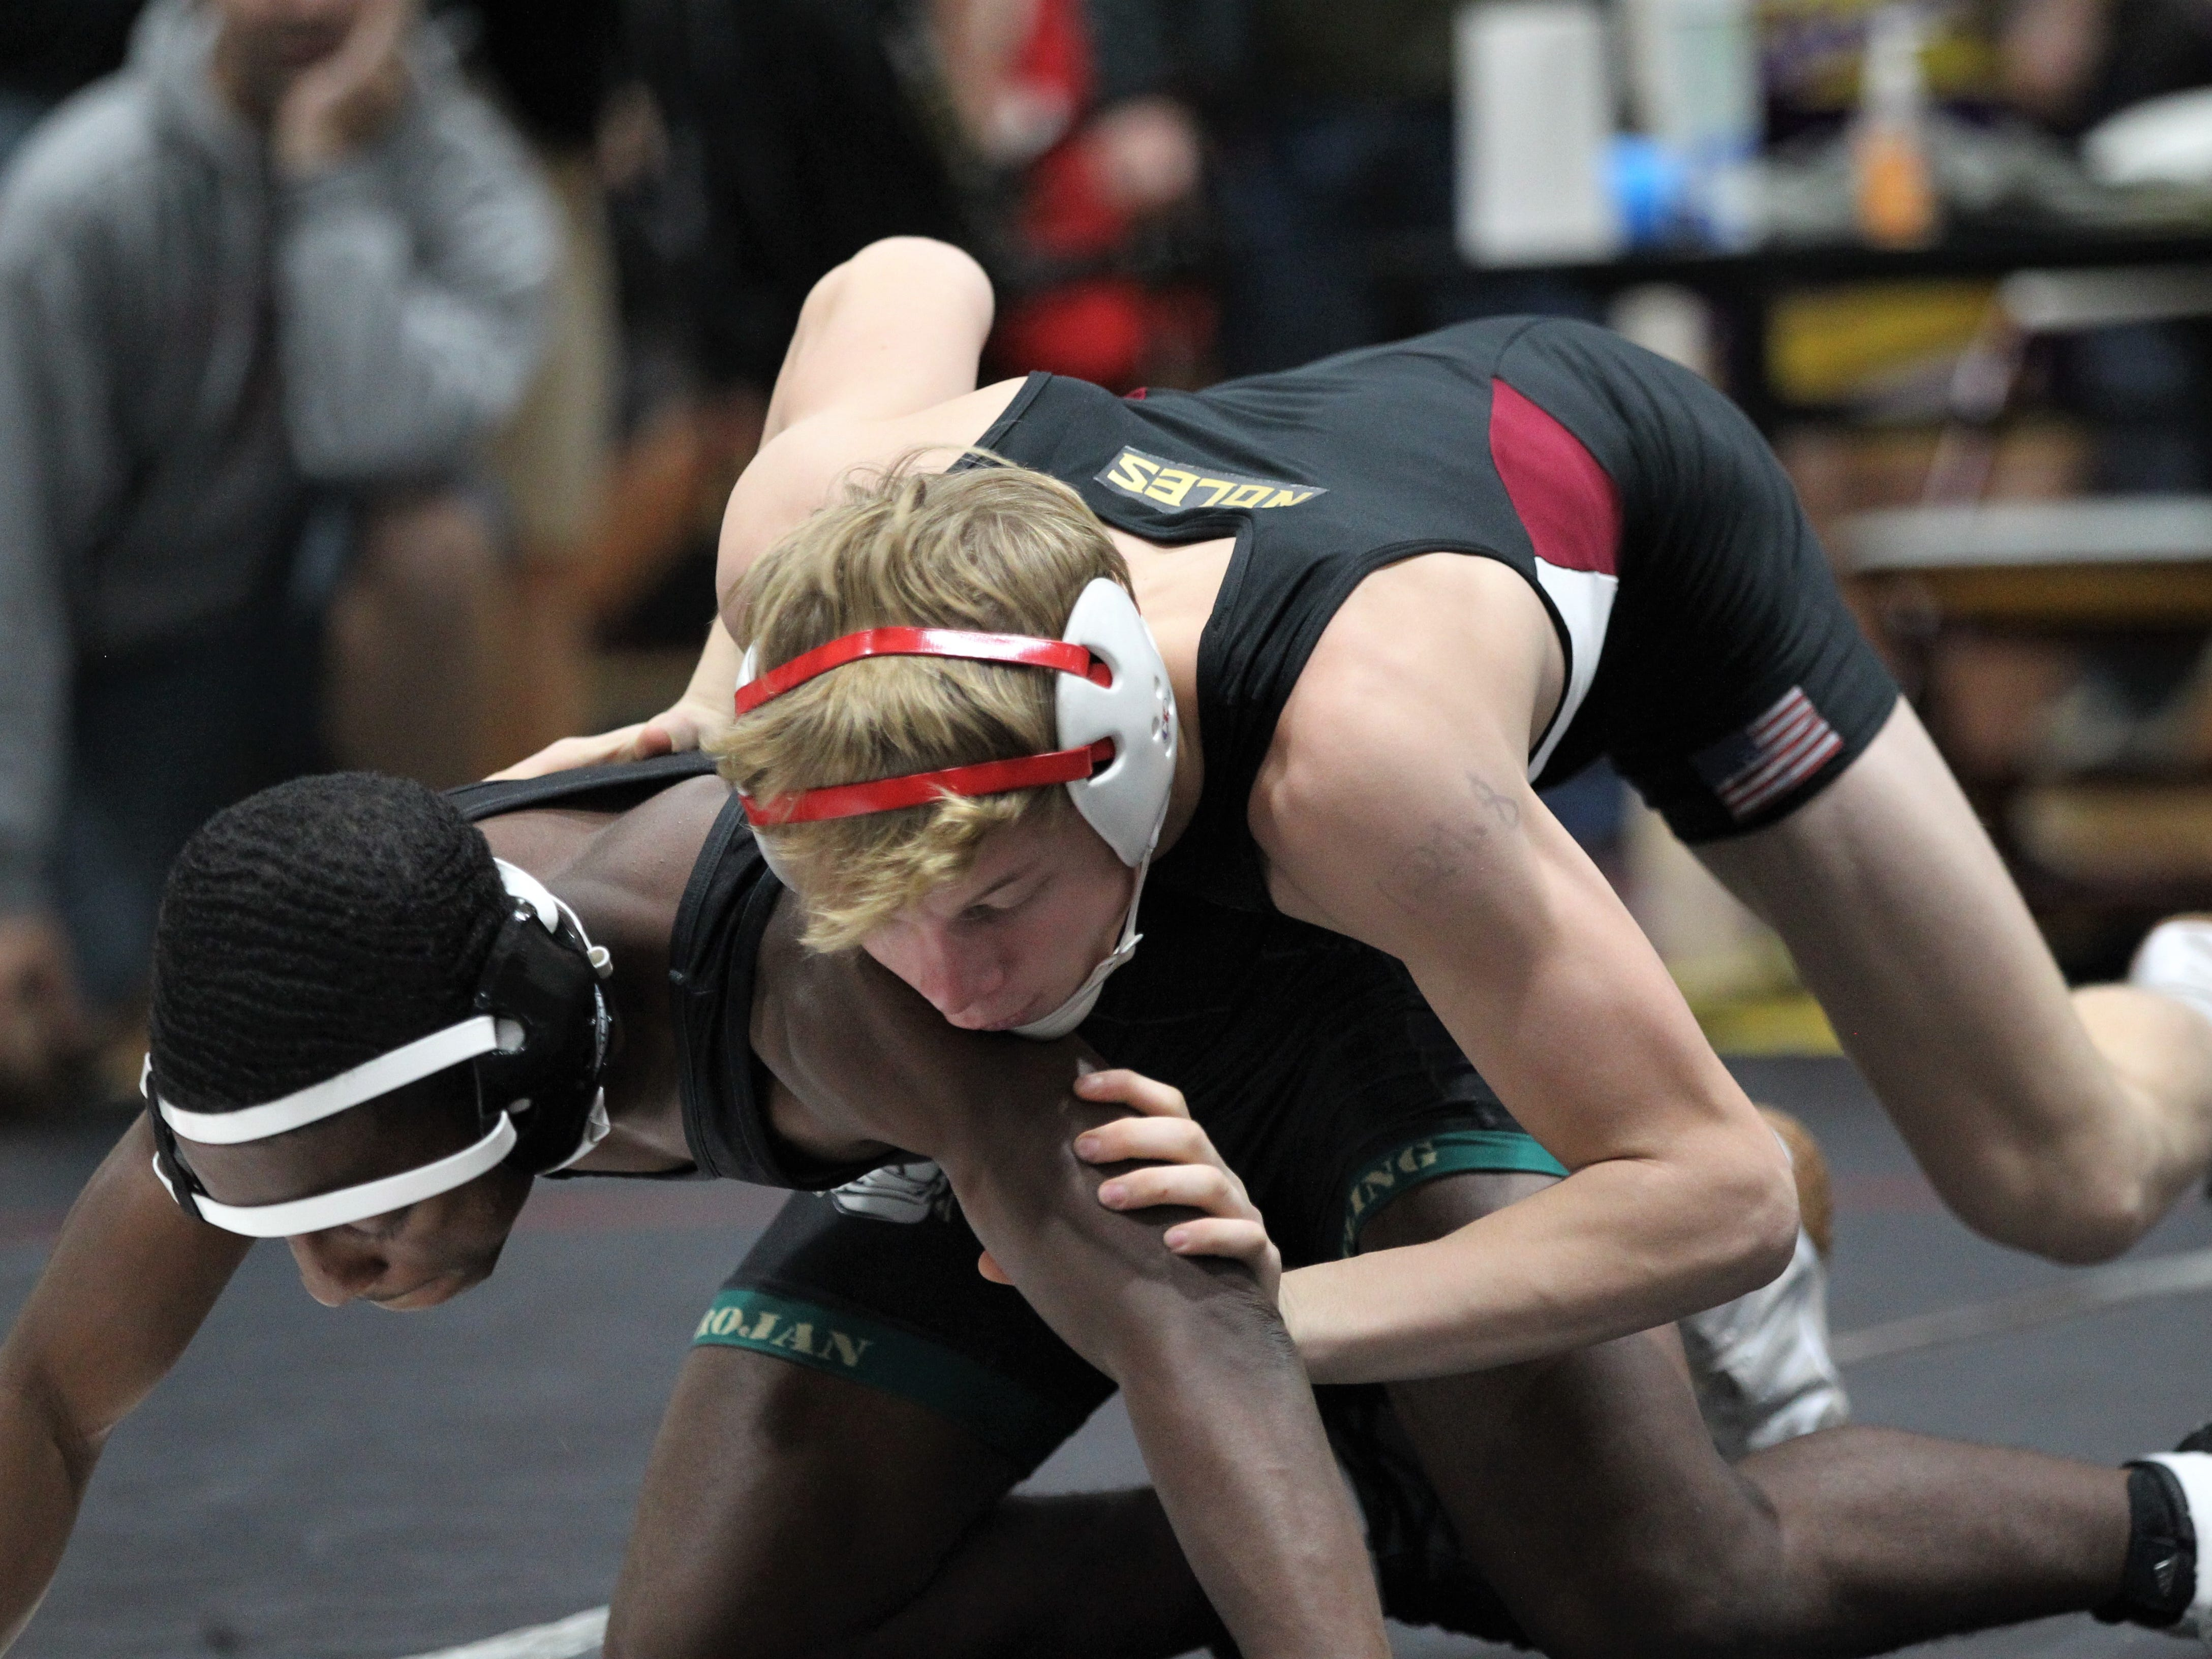 Florida High's Brooks Dyer wrestles at the Cam Brown Seminole Classic wrestling tournament at Florida High on Dec. 7-8, 2018.